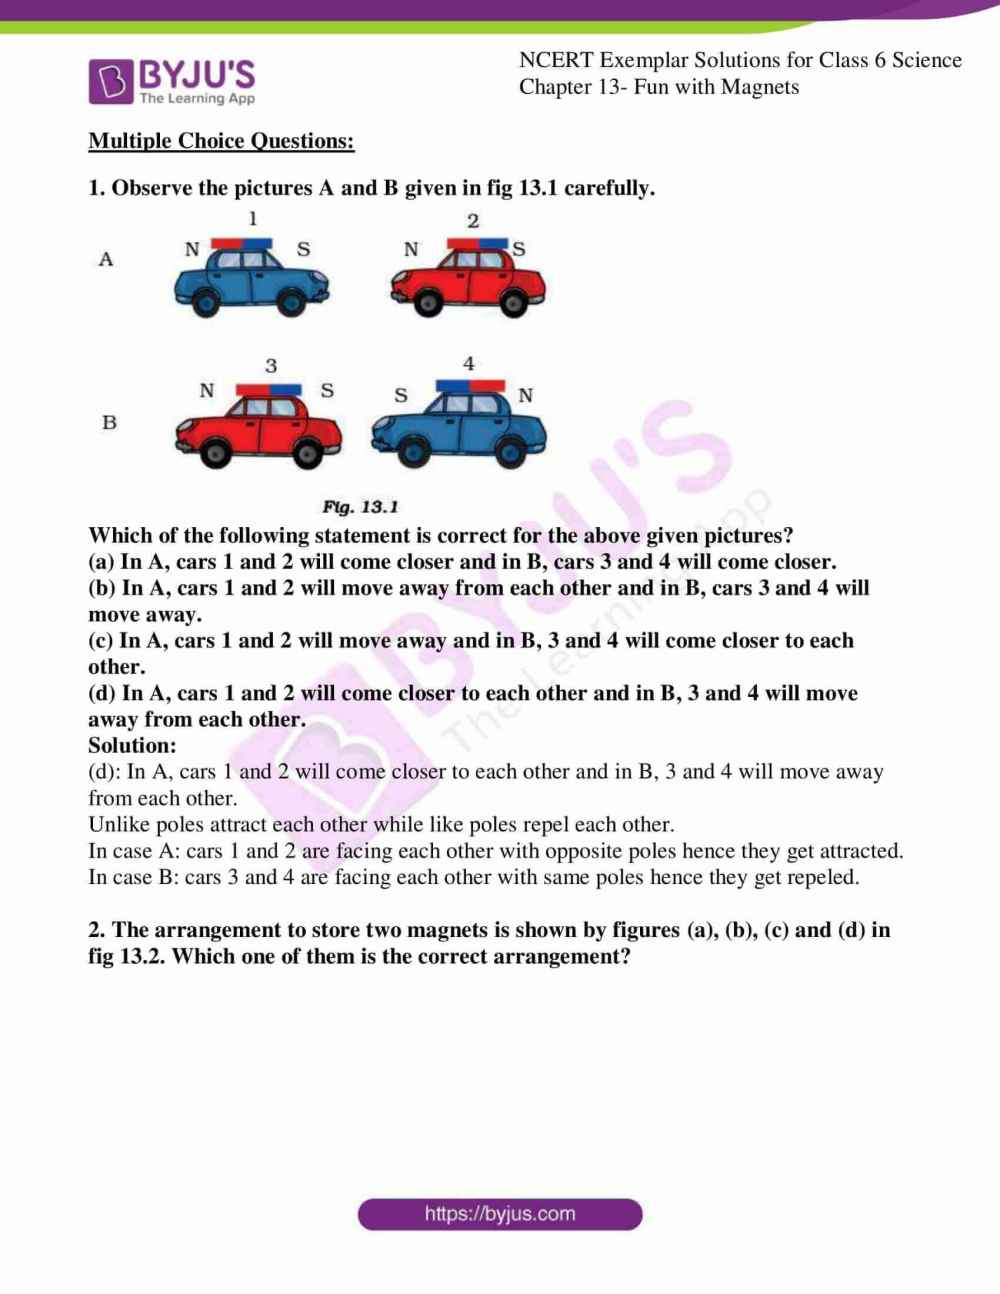 medium resolution of Avail free pdf of NCERT Exemplar Solutions for Class 6 Science Chapter 13 -  Fun with Magnets